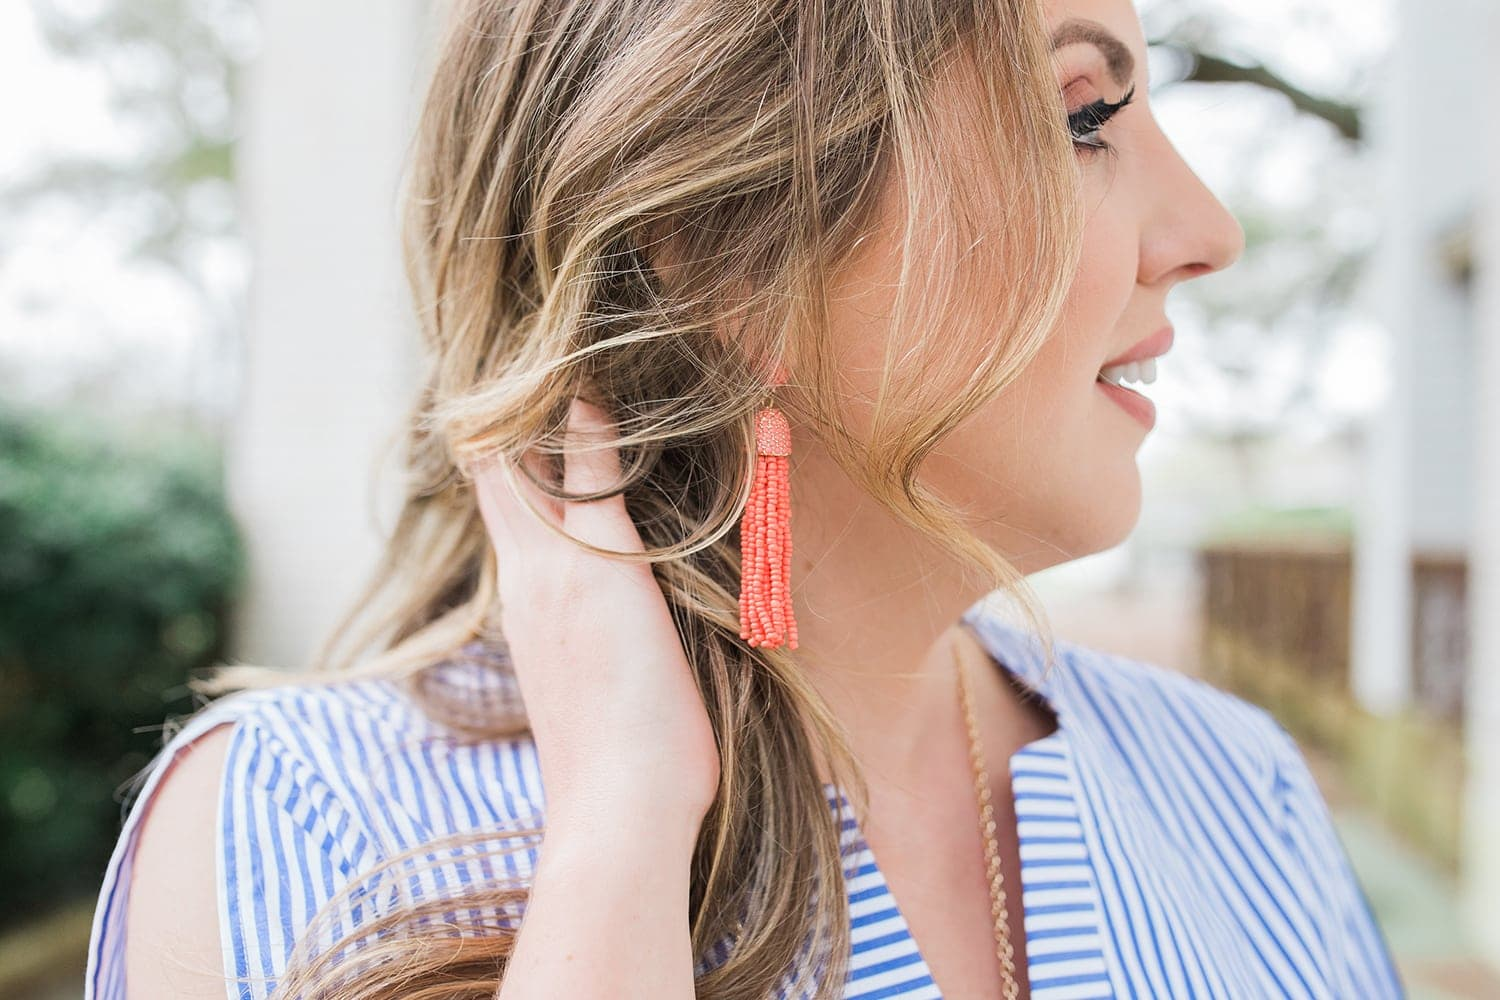 Houston blogger Meg O. on the Go shows some beautiful coral tassel earrings from the Avon Modern Southern Belle Collection